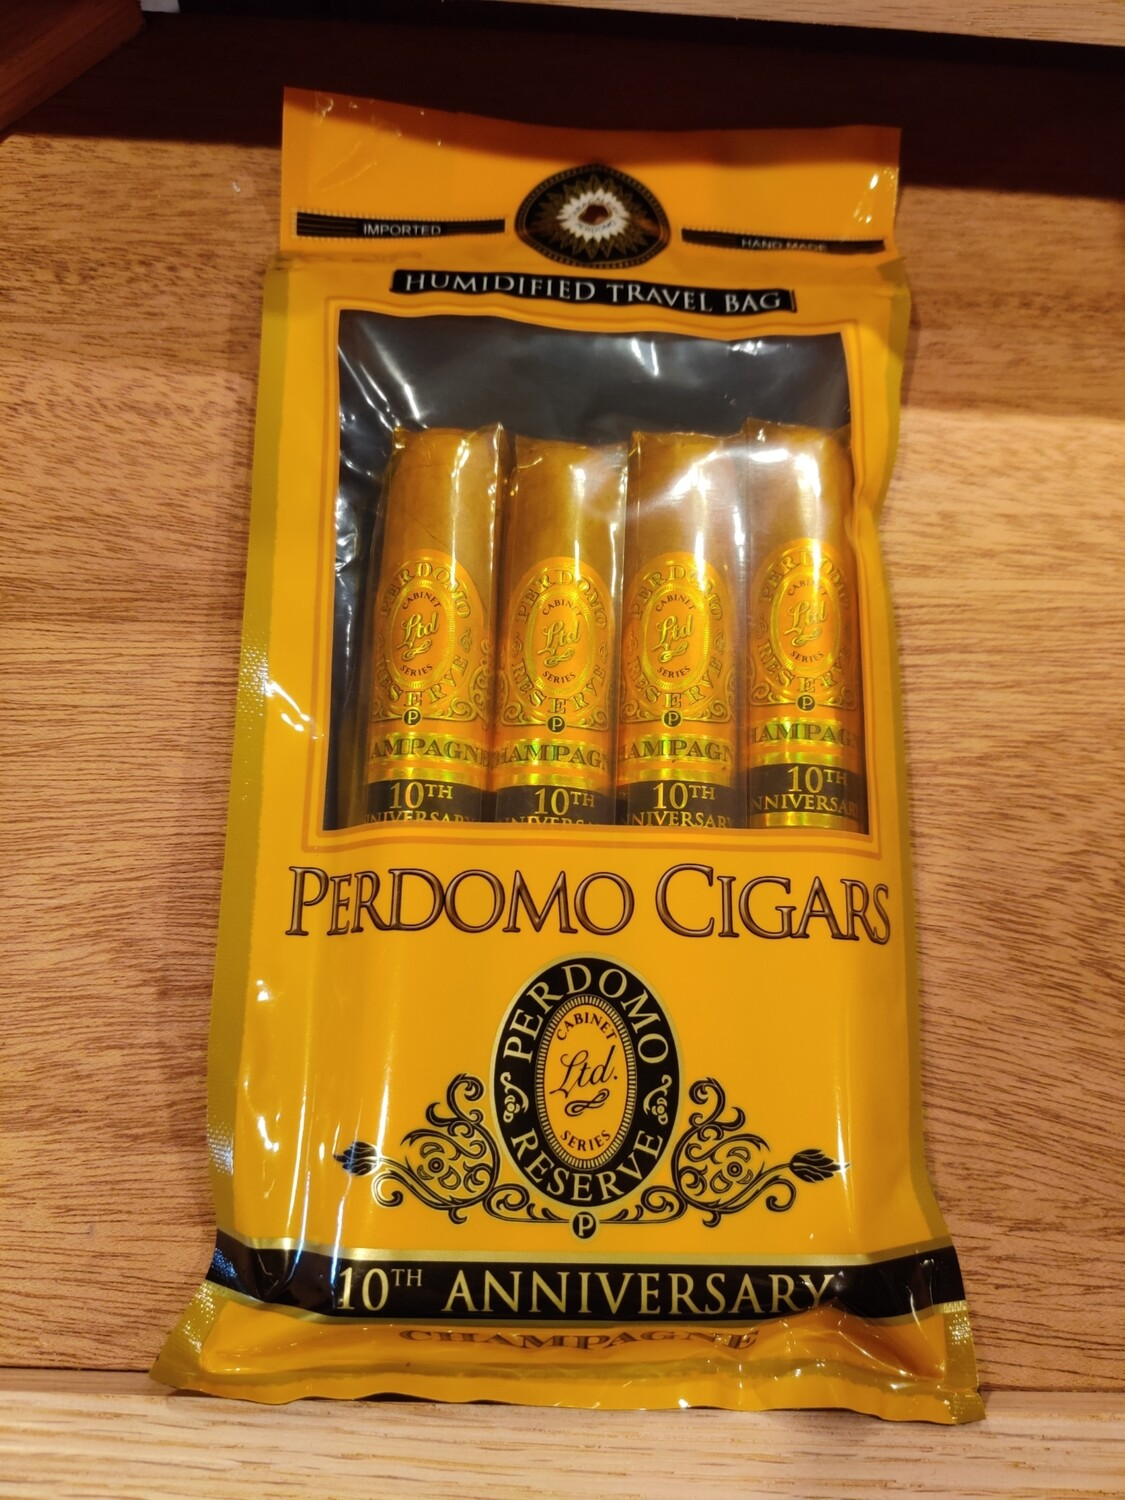 Perdomo Humidified Bag 4 Pk Champagne Epicure